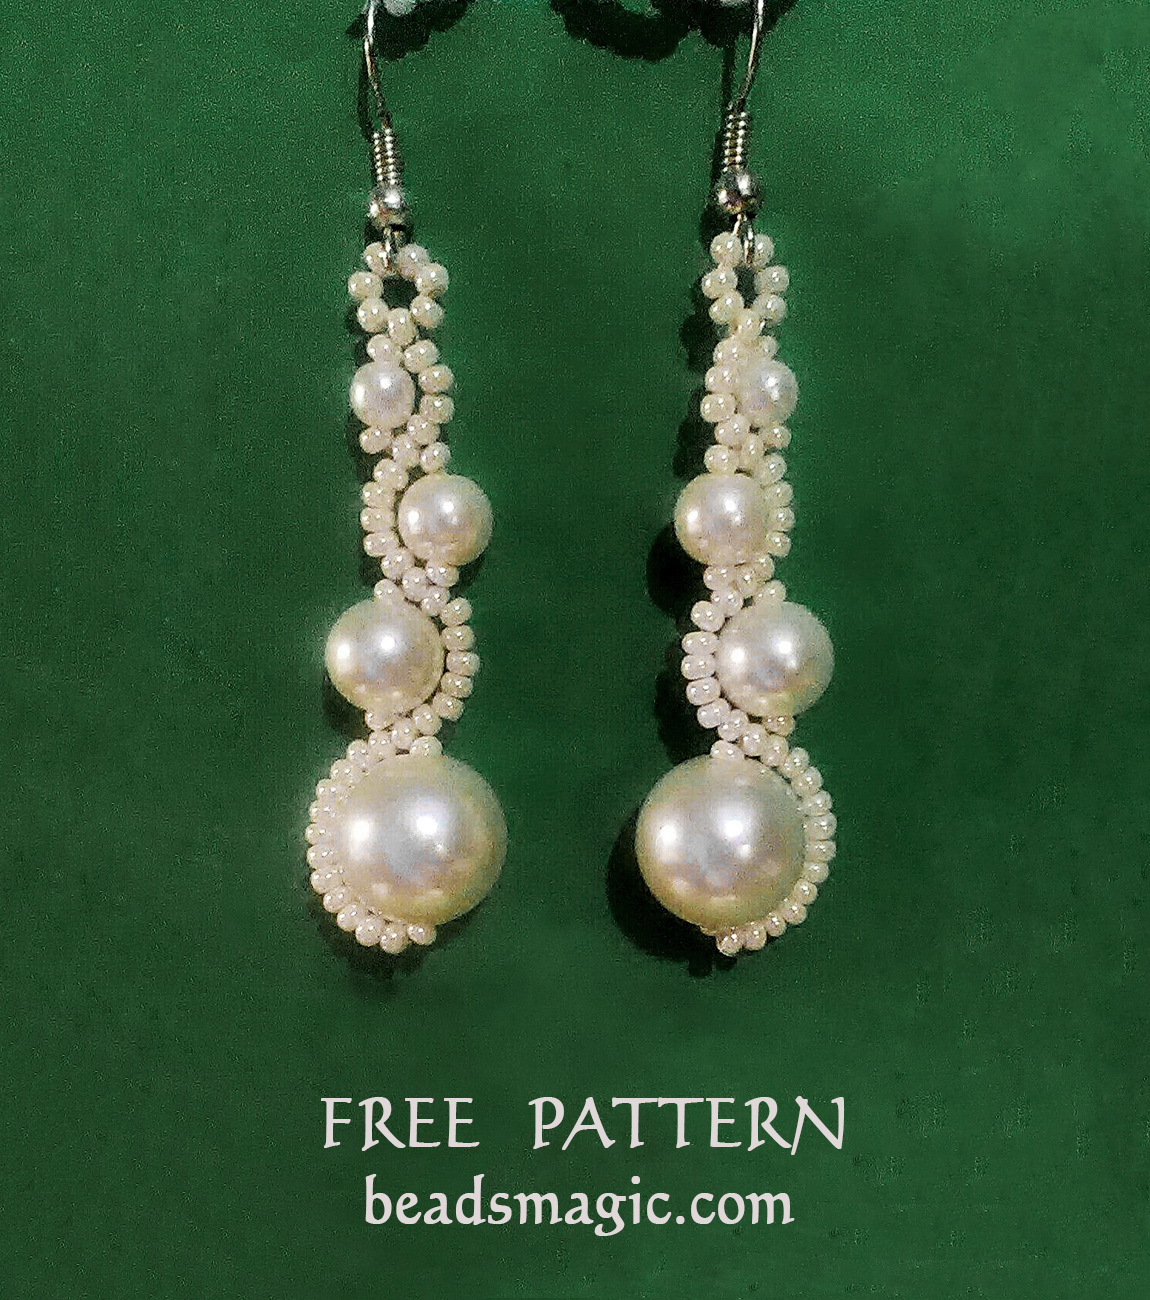 Free pattern for earrings White Moon